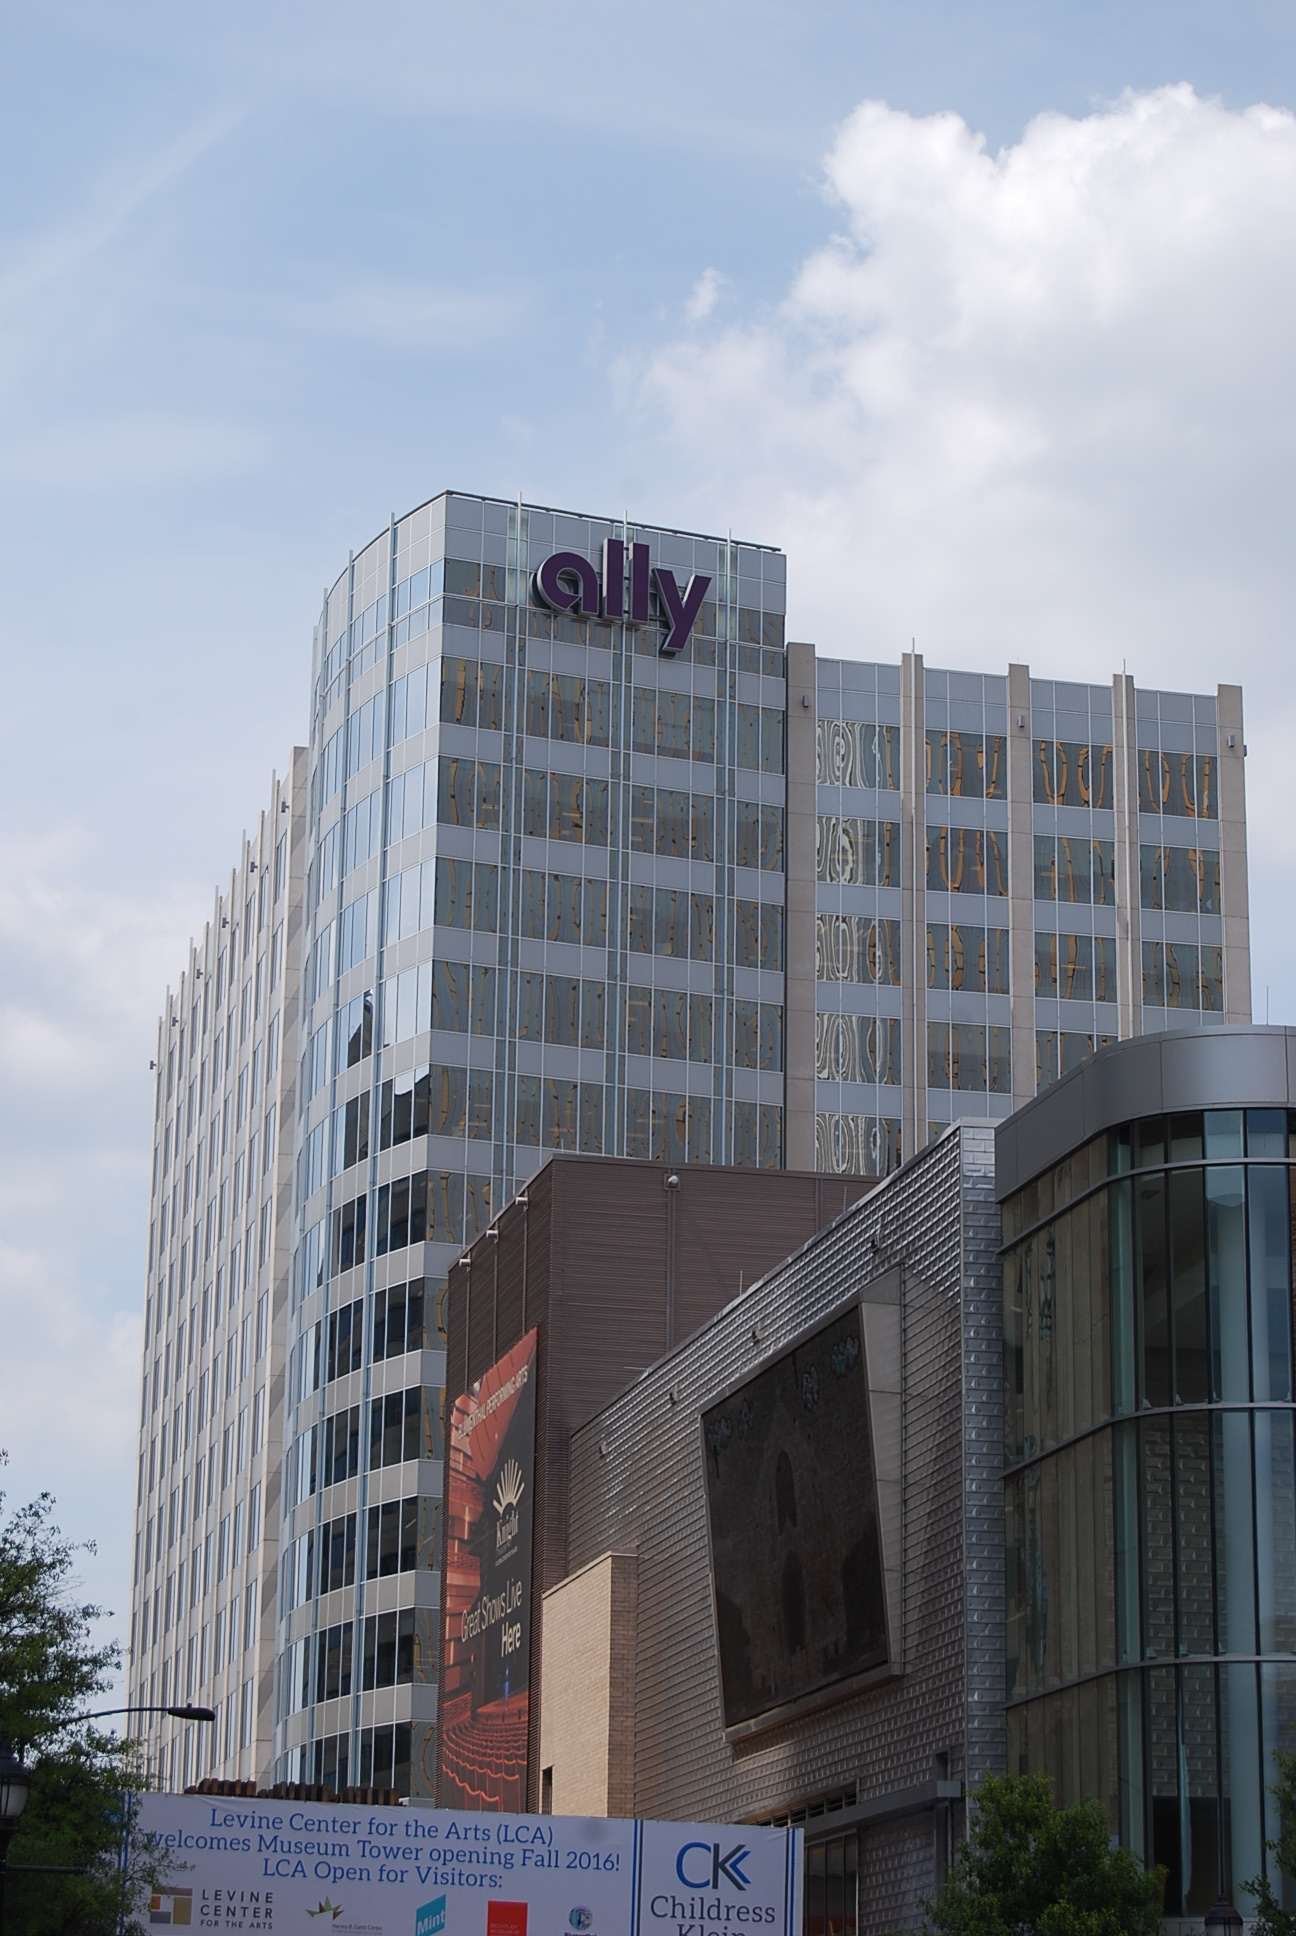 Ally Center 440 South Church Street Charlotte, NC 28202